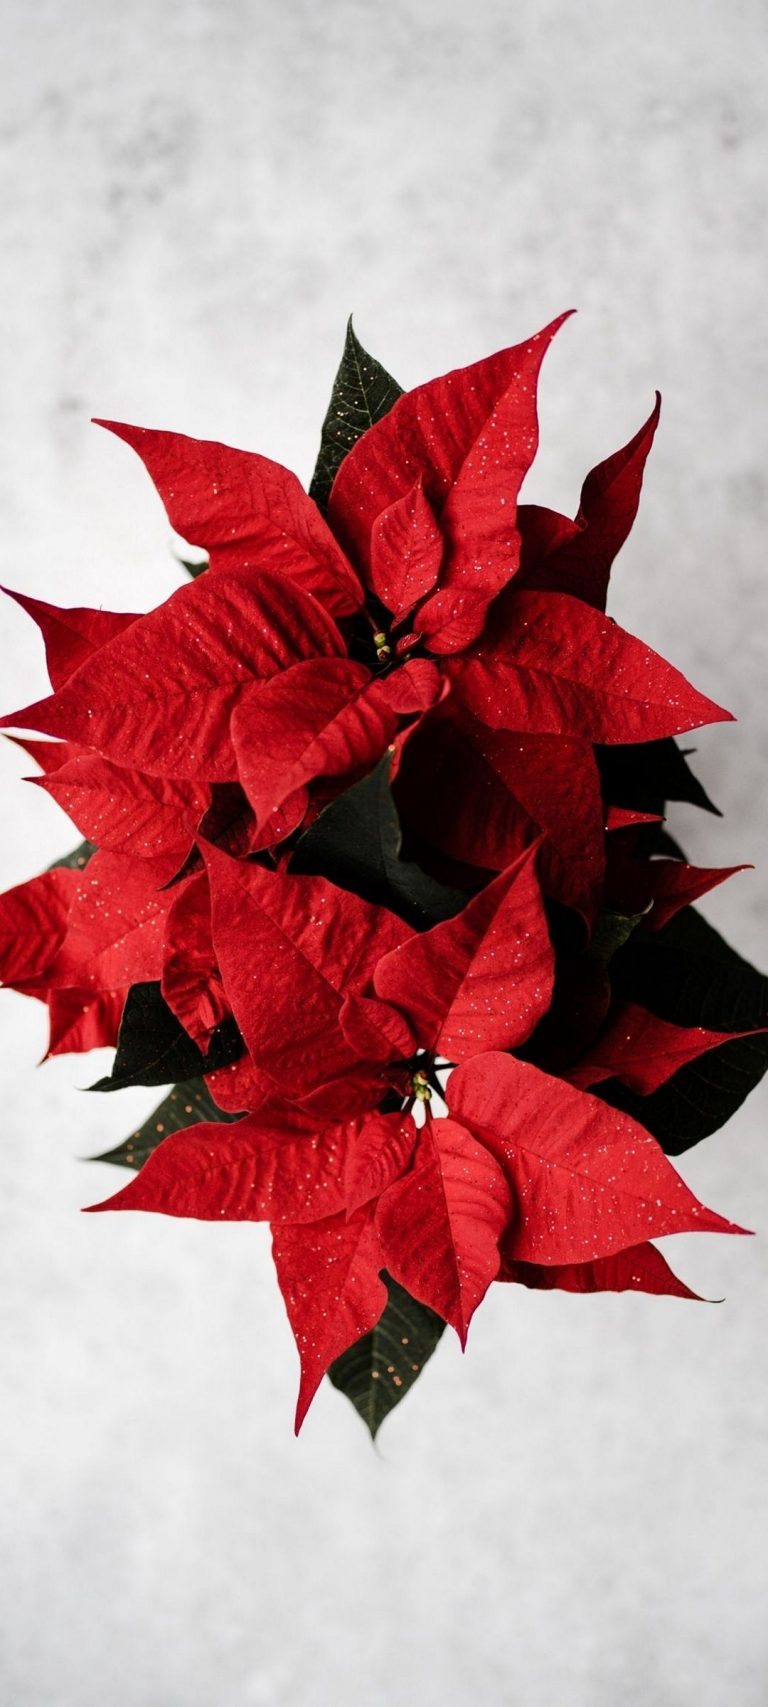 Poinsettia Red Flower 1080x2400 768x1707